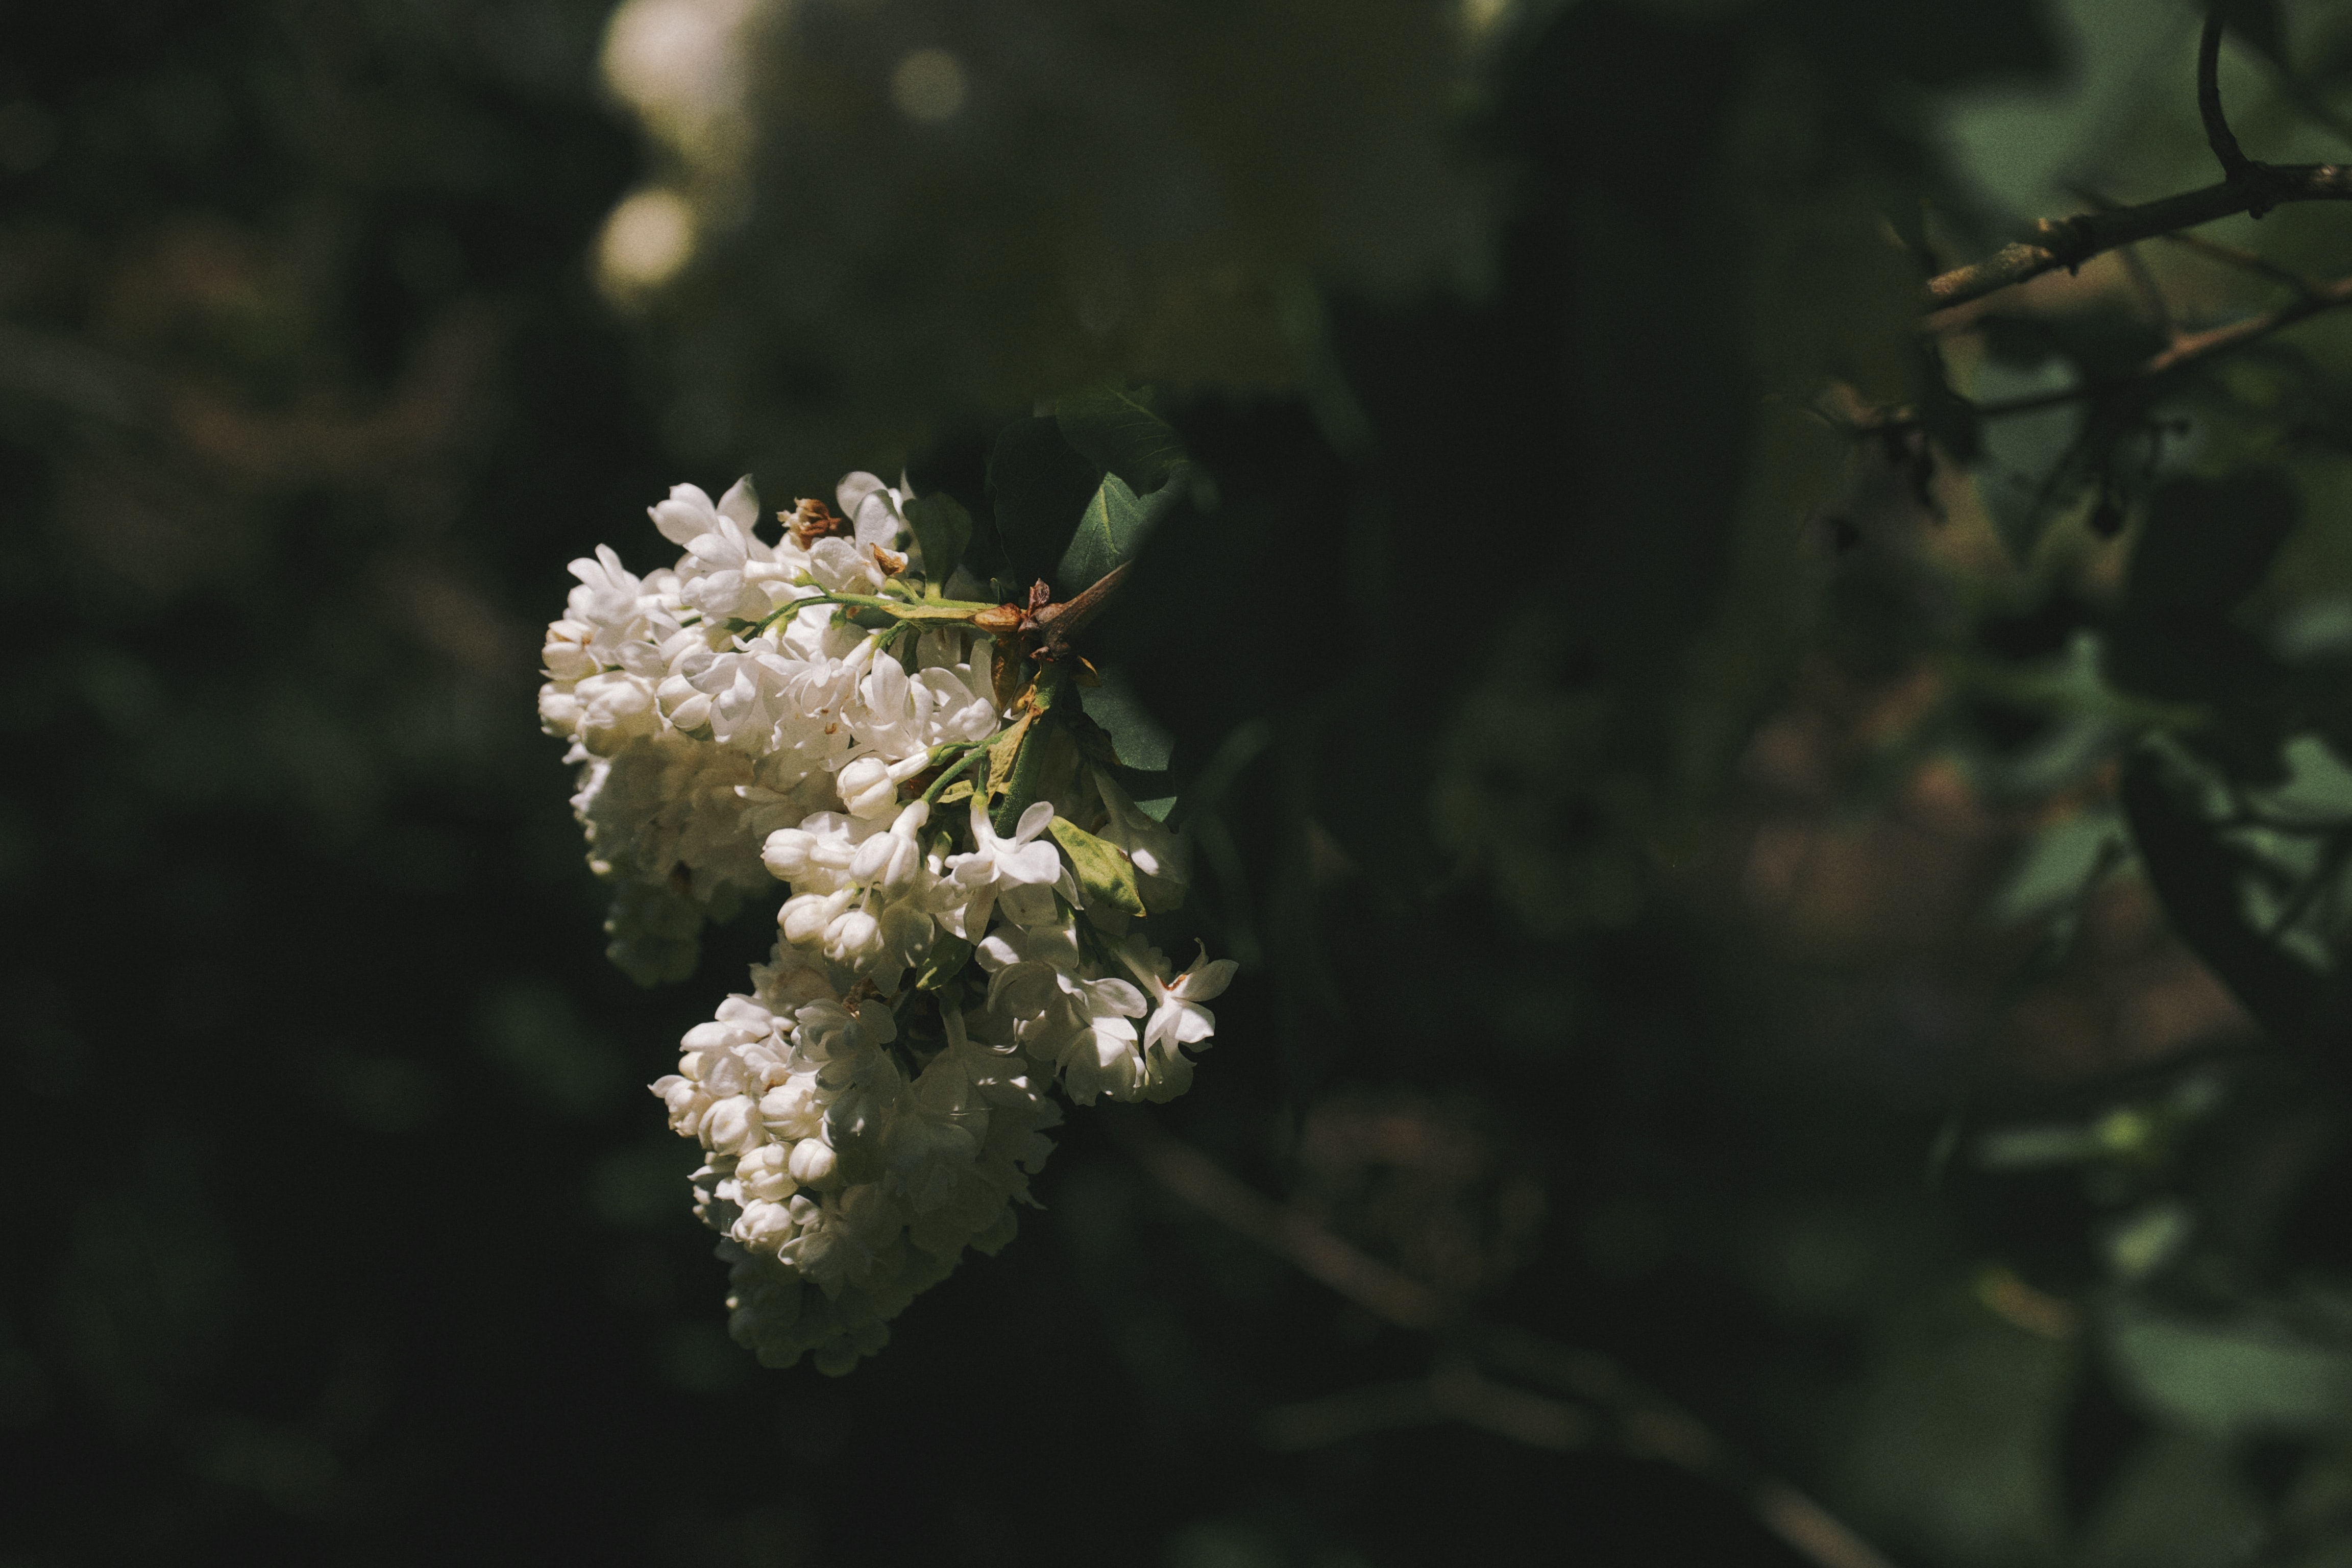 A cluster of white lilac flowers in a dark thicket